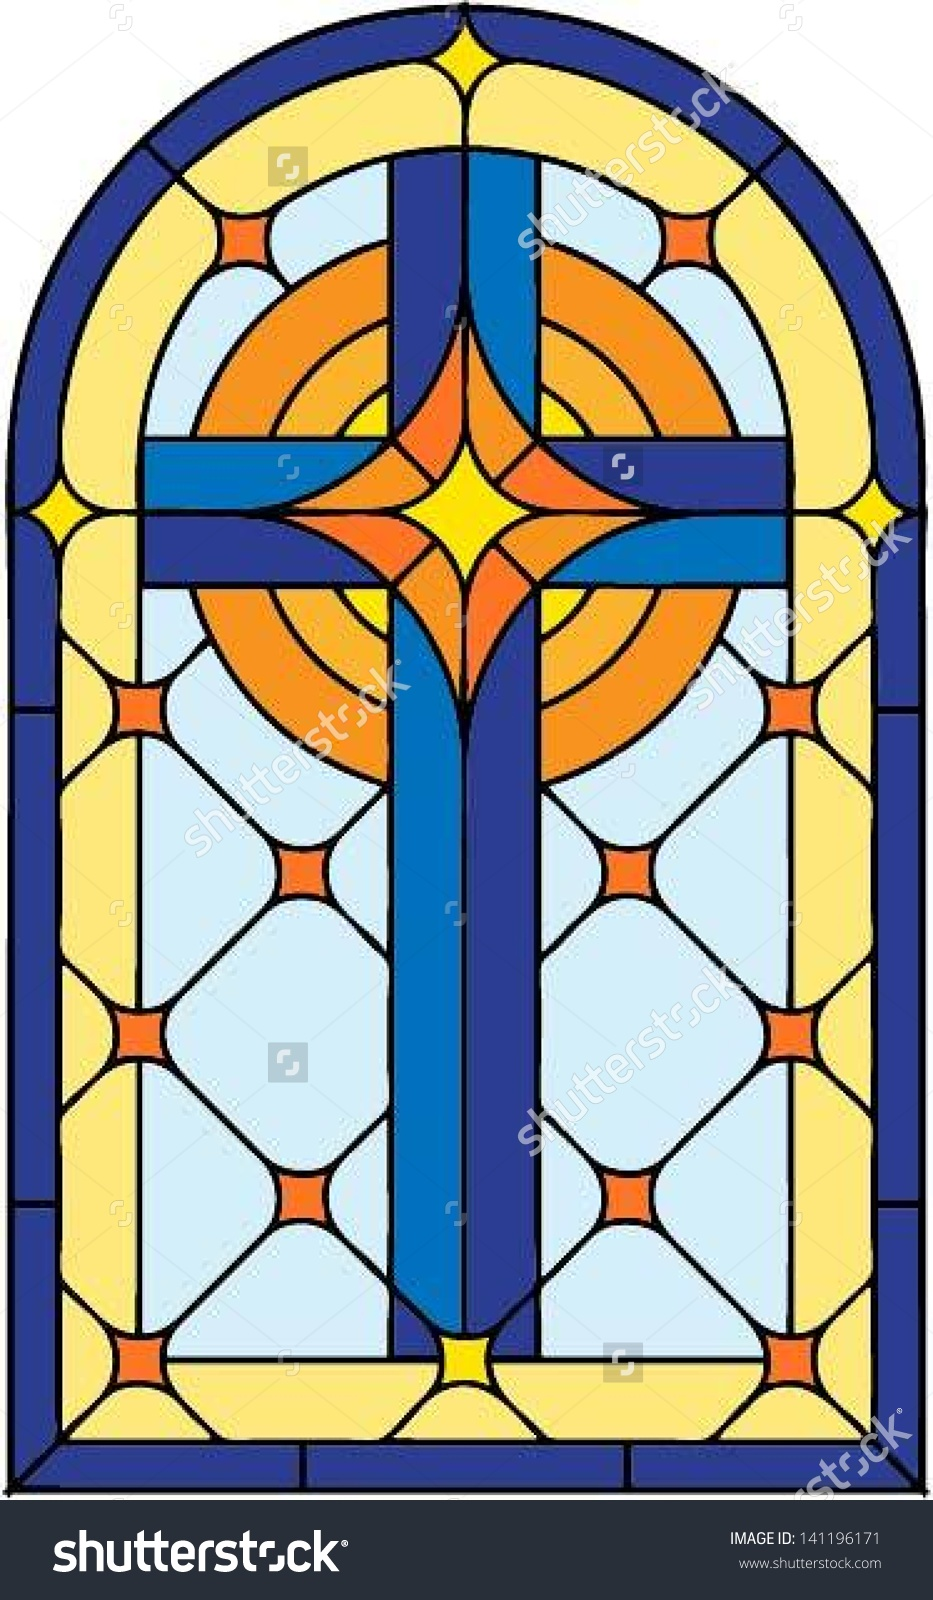 free clipart stained glass window - photo #23